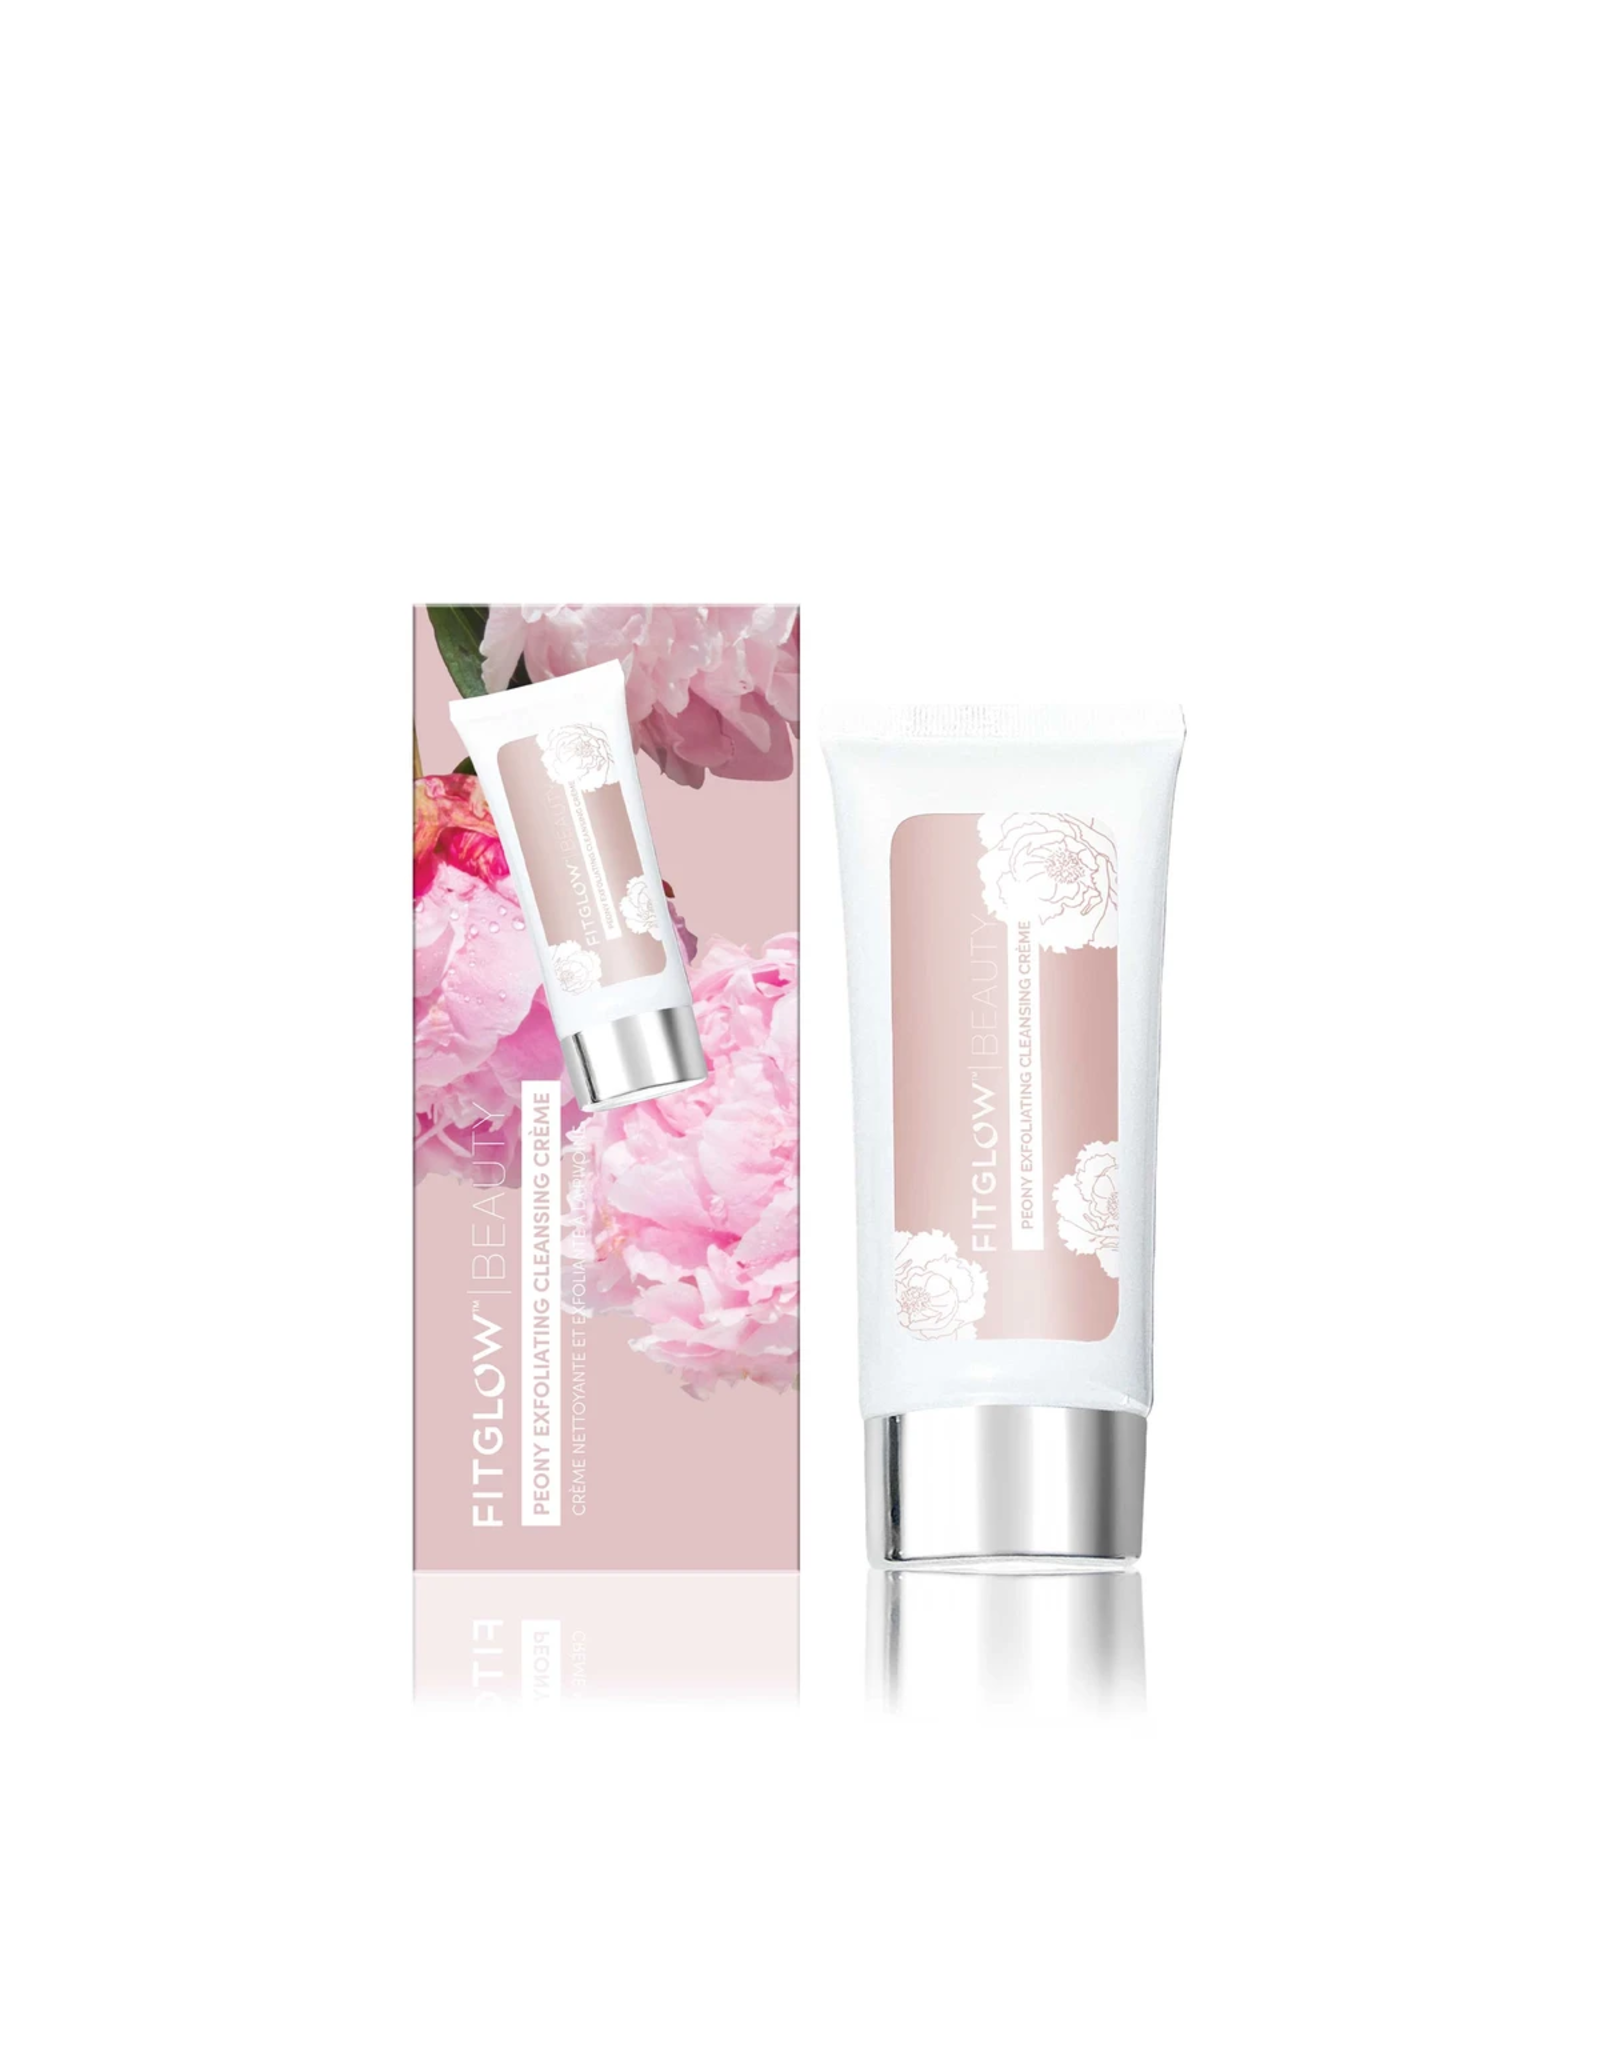 Fitglow Beauty Peony Exfoliating Cleansing Crème